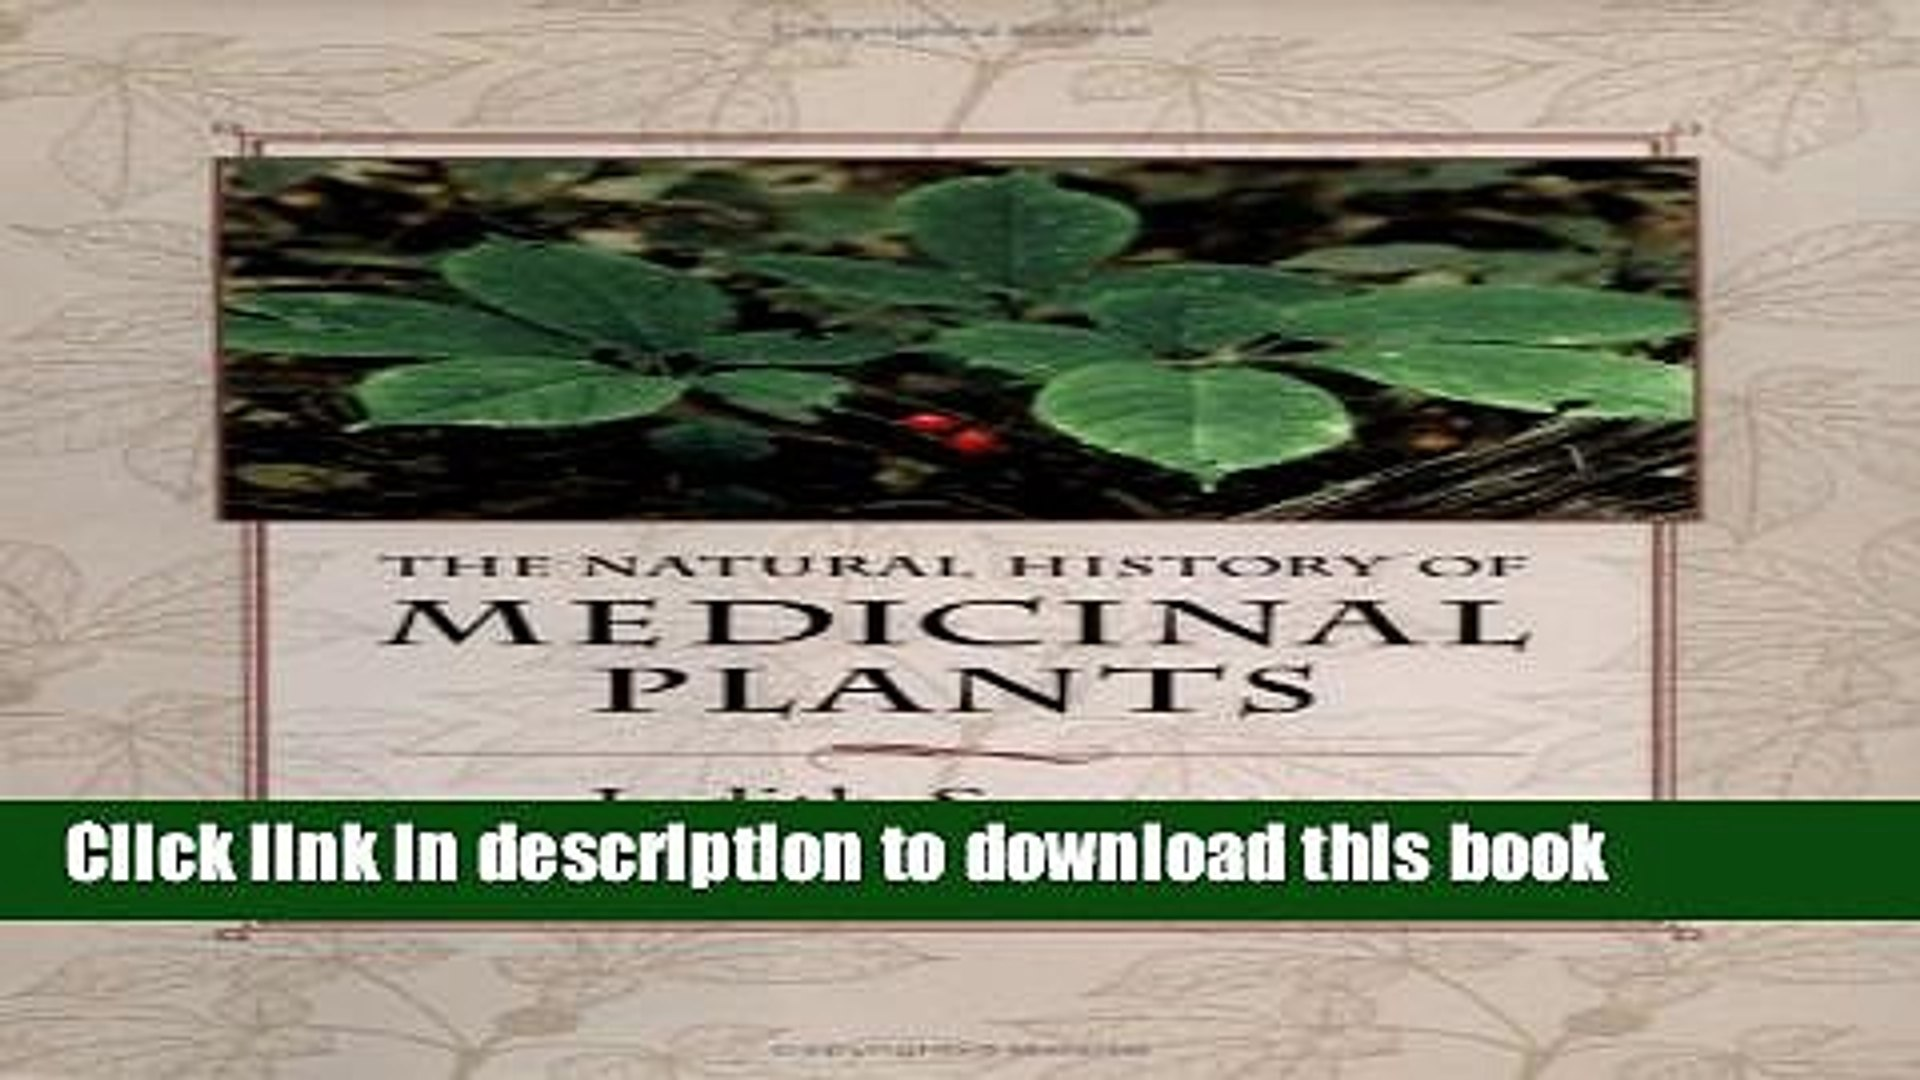 [PDF] The Natural History of Medicinal Plants [Full Ebook]